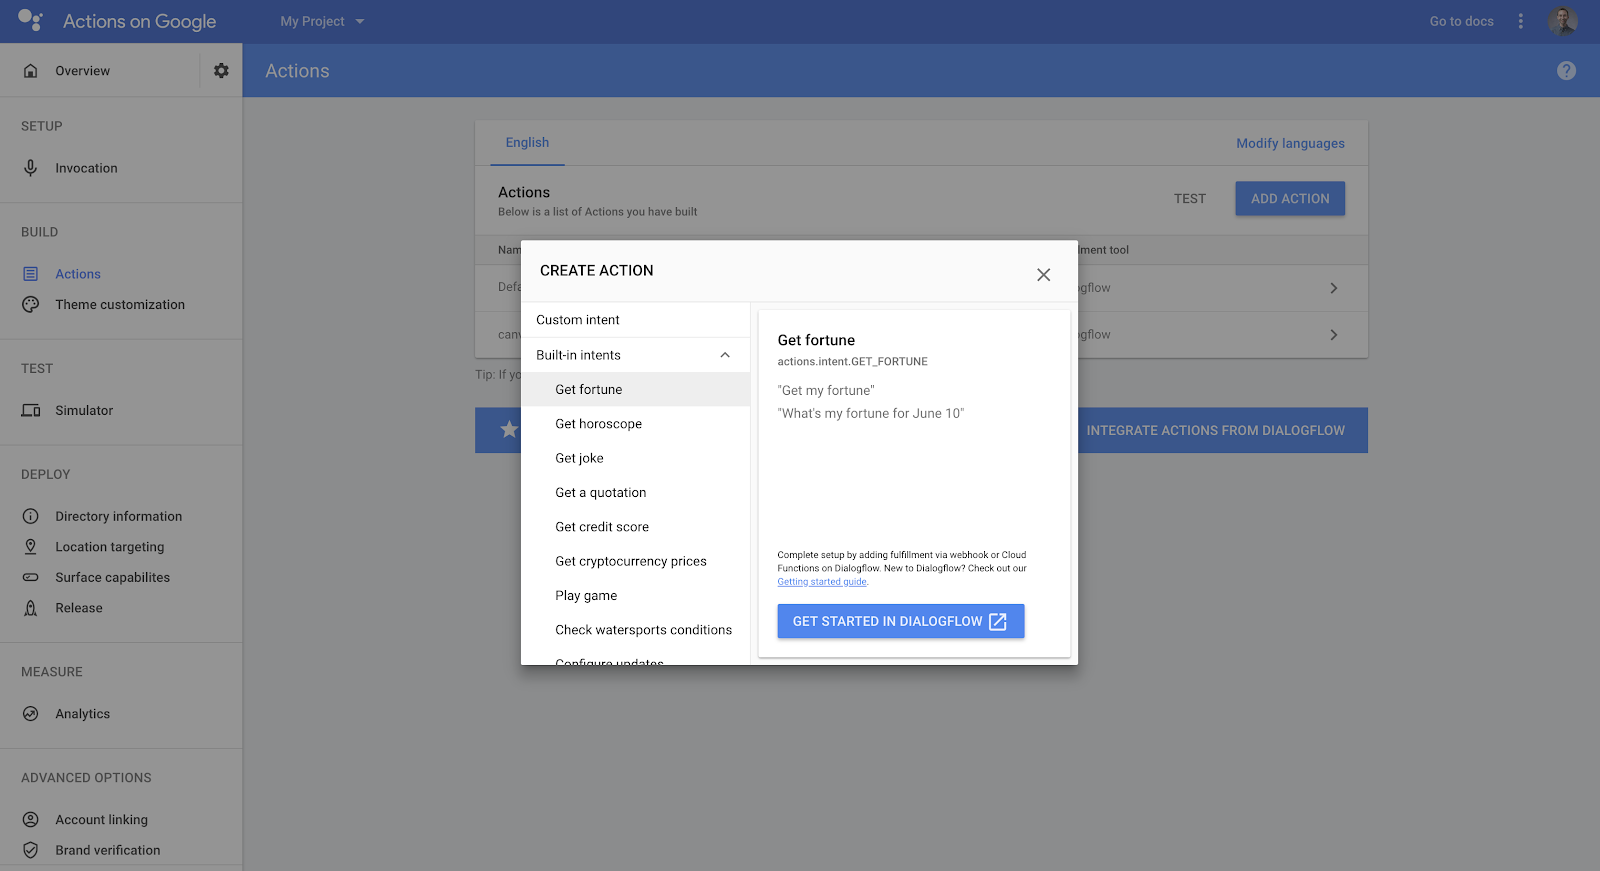 Google Developers Blog: 5 Tips for Developing Actions with